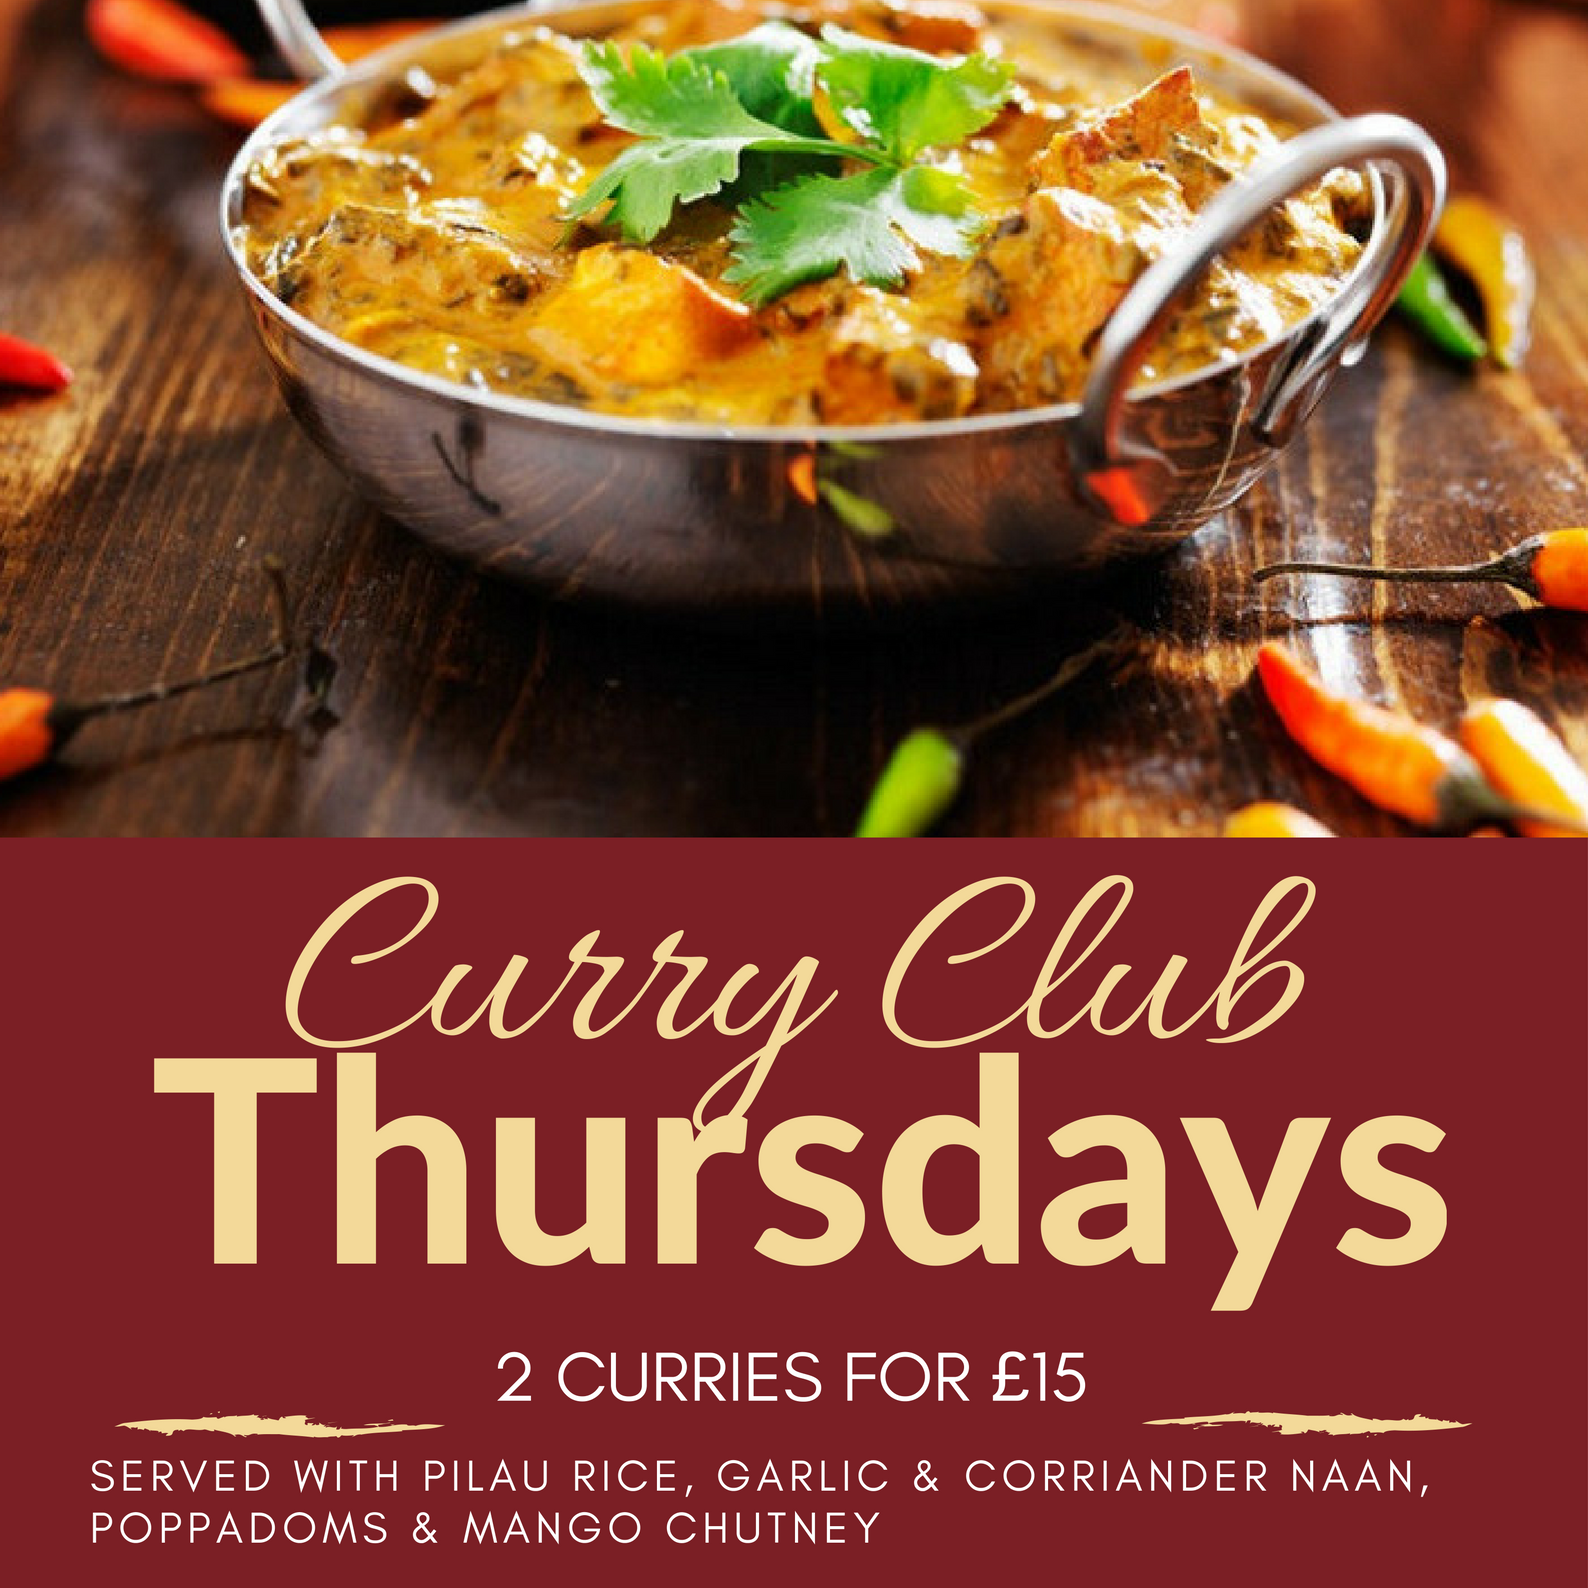 Curry Club Thursdays